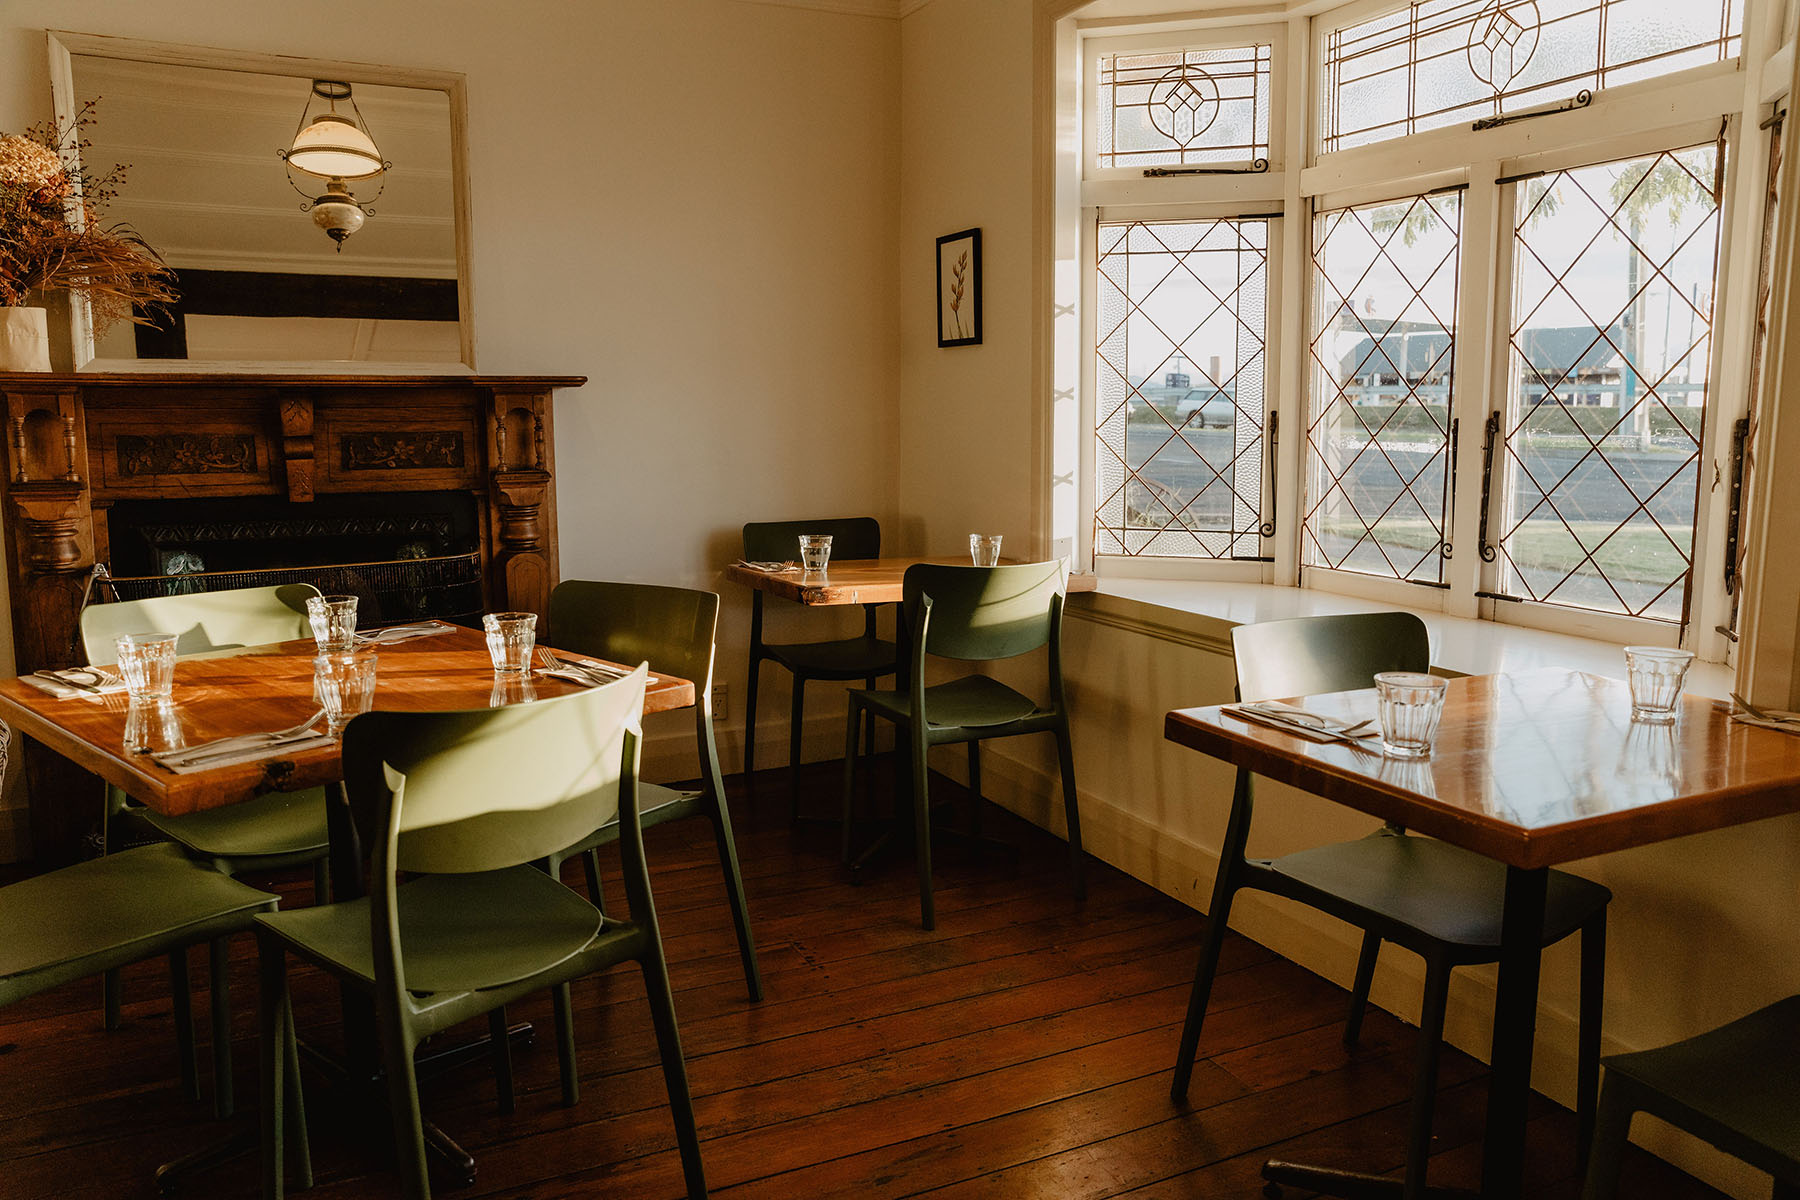 The Trading Post dining room